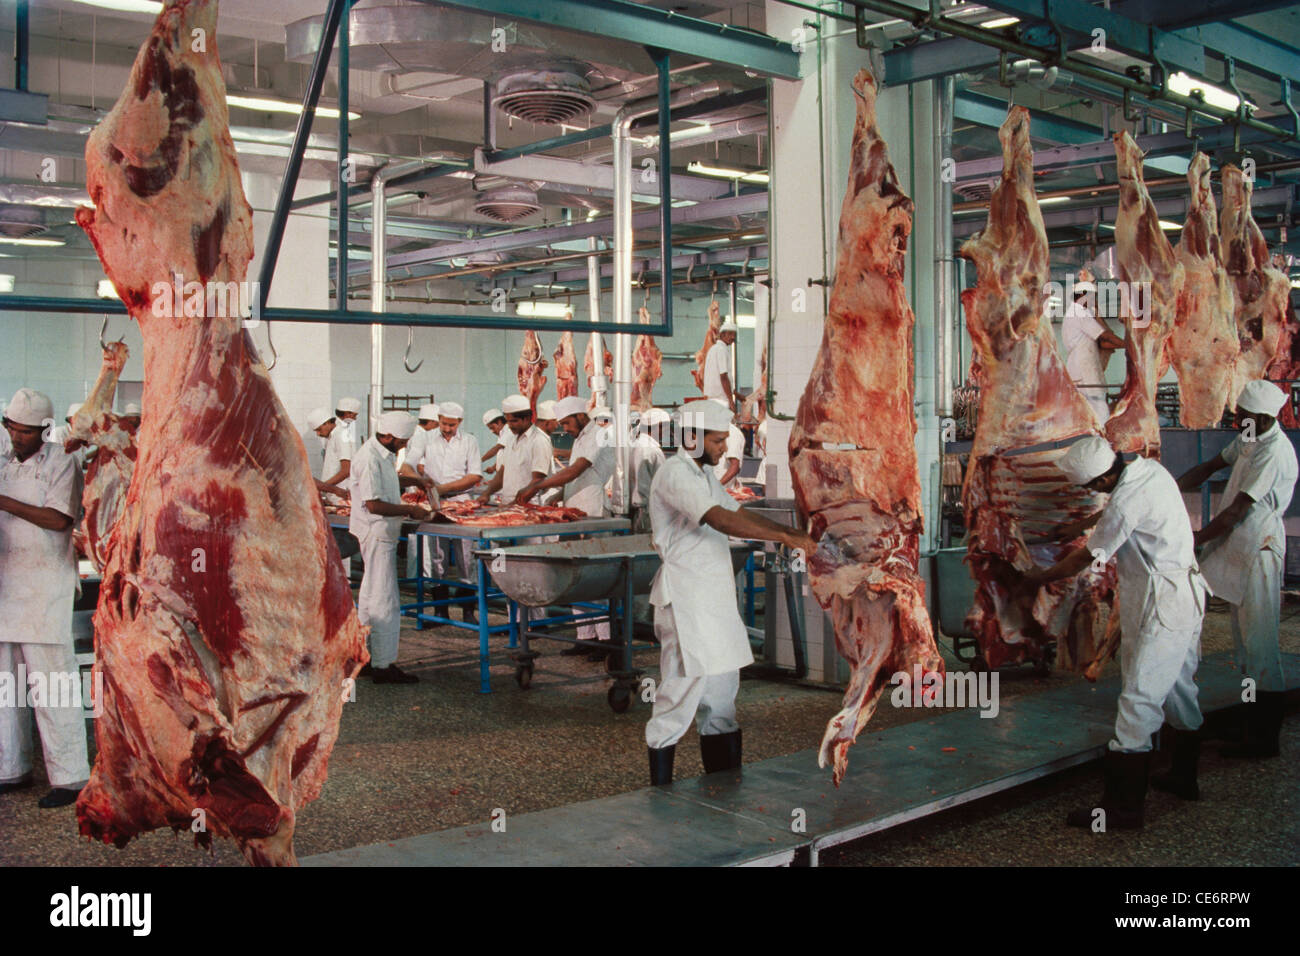 HMA 85802 : skilled worker handling hanging carcasses in hygenic mechanised slaughter house for exporting meat maharashtra - Stock Image